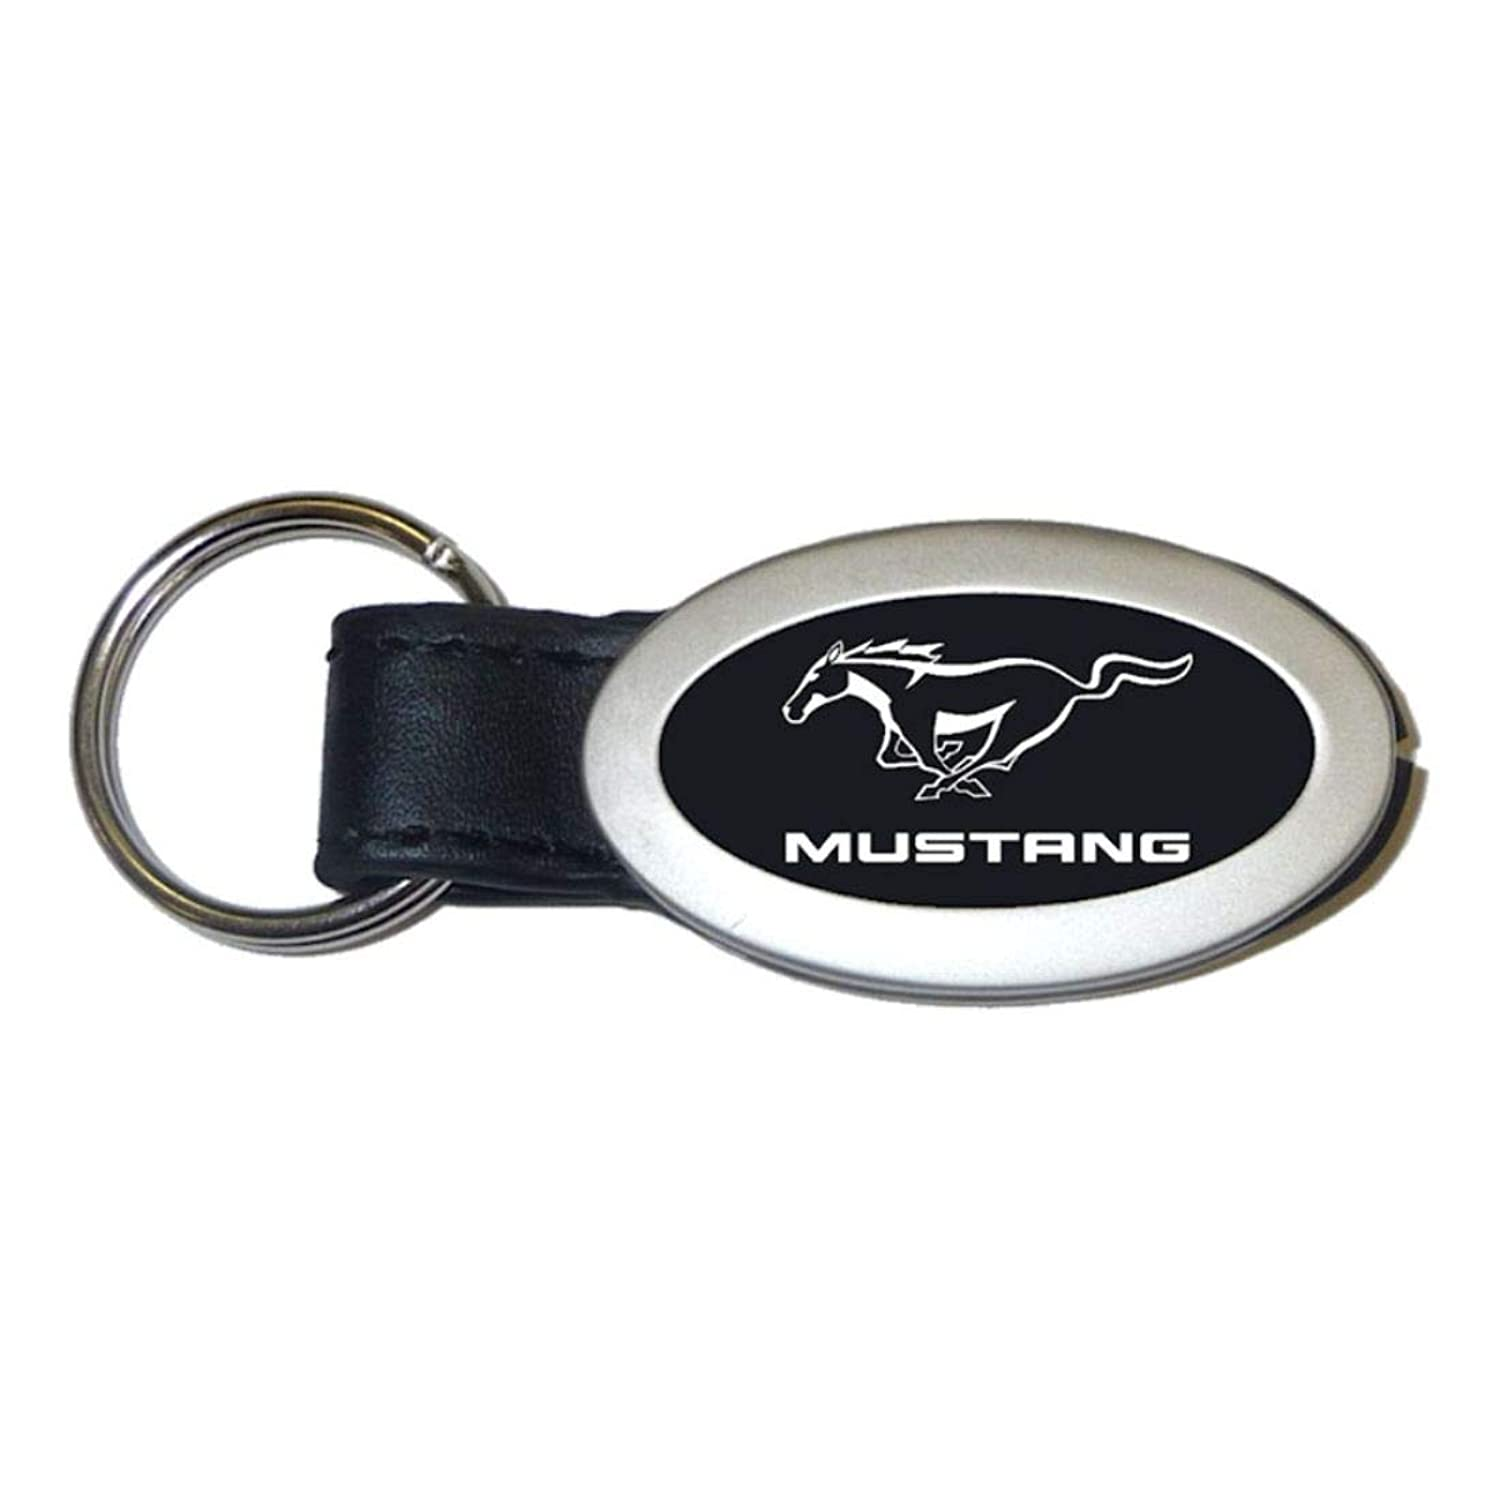 Au-Tomotive Gold, INC. Ford Mustang Black Oval Leather Key Fob Authentic Logo Key Chain Key Ring Keychain Lanyard